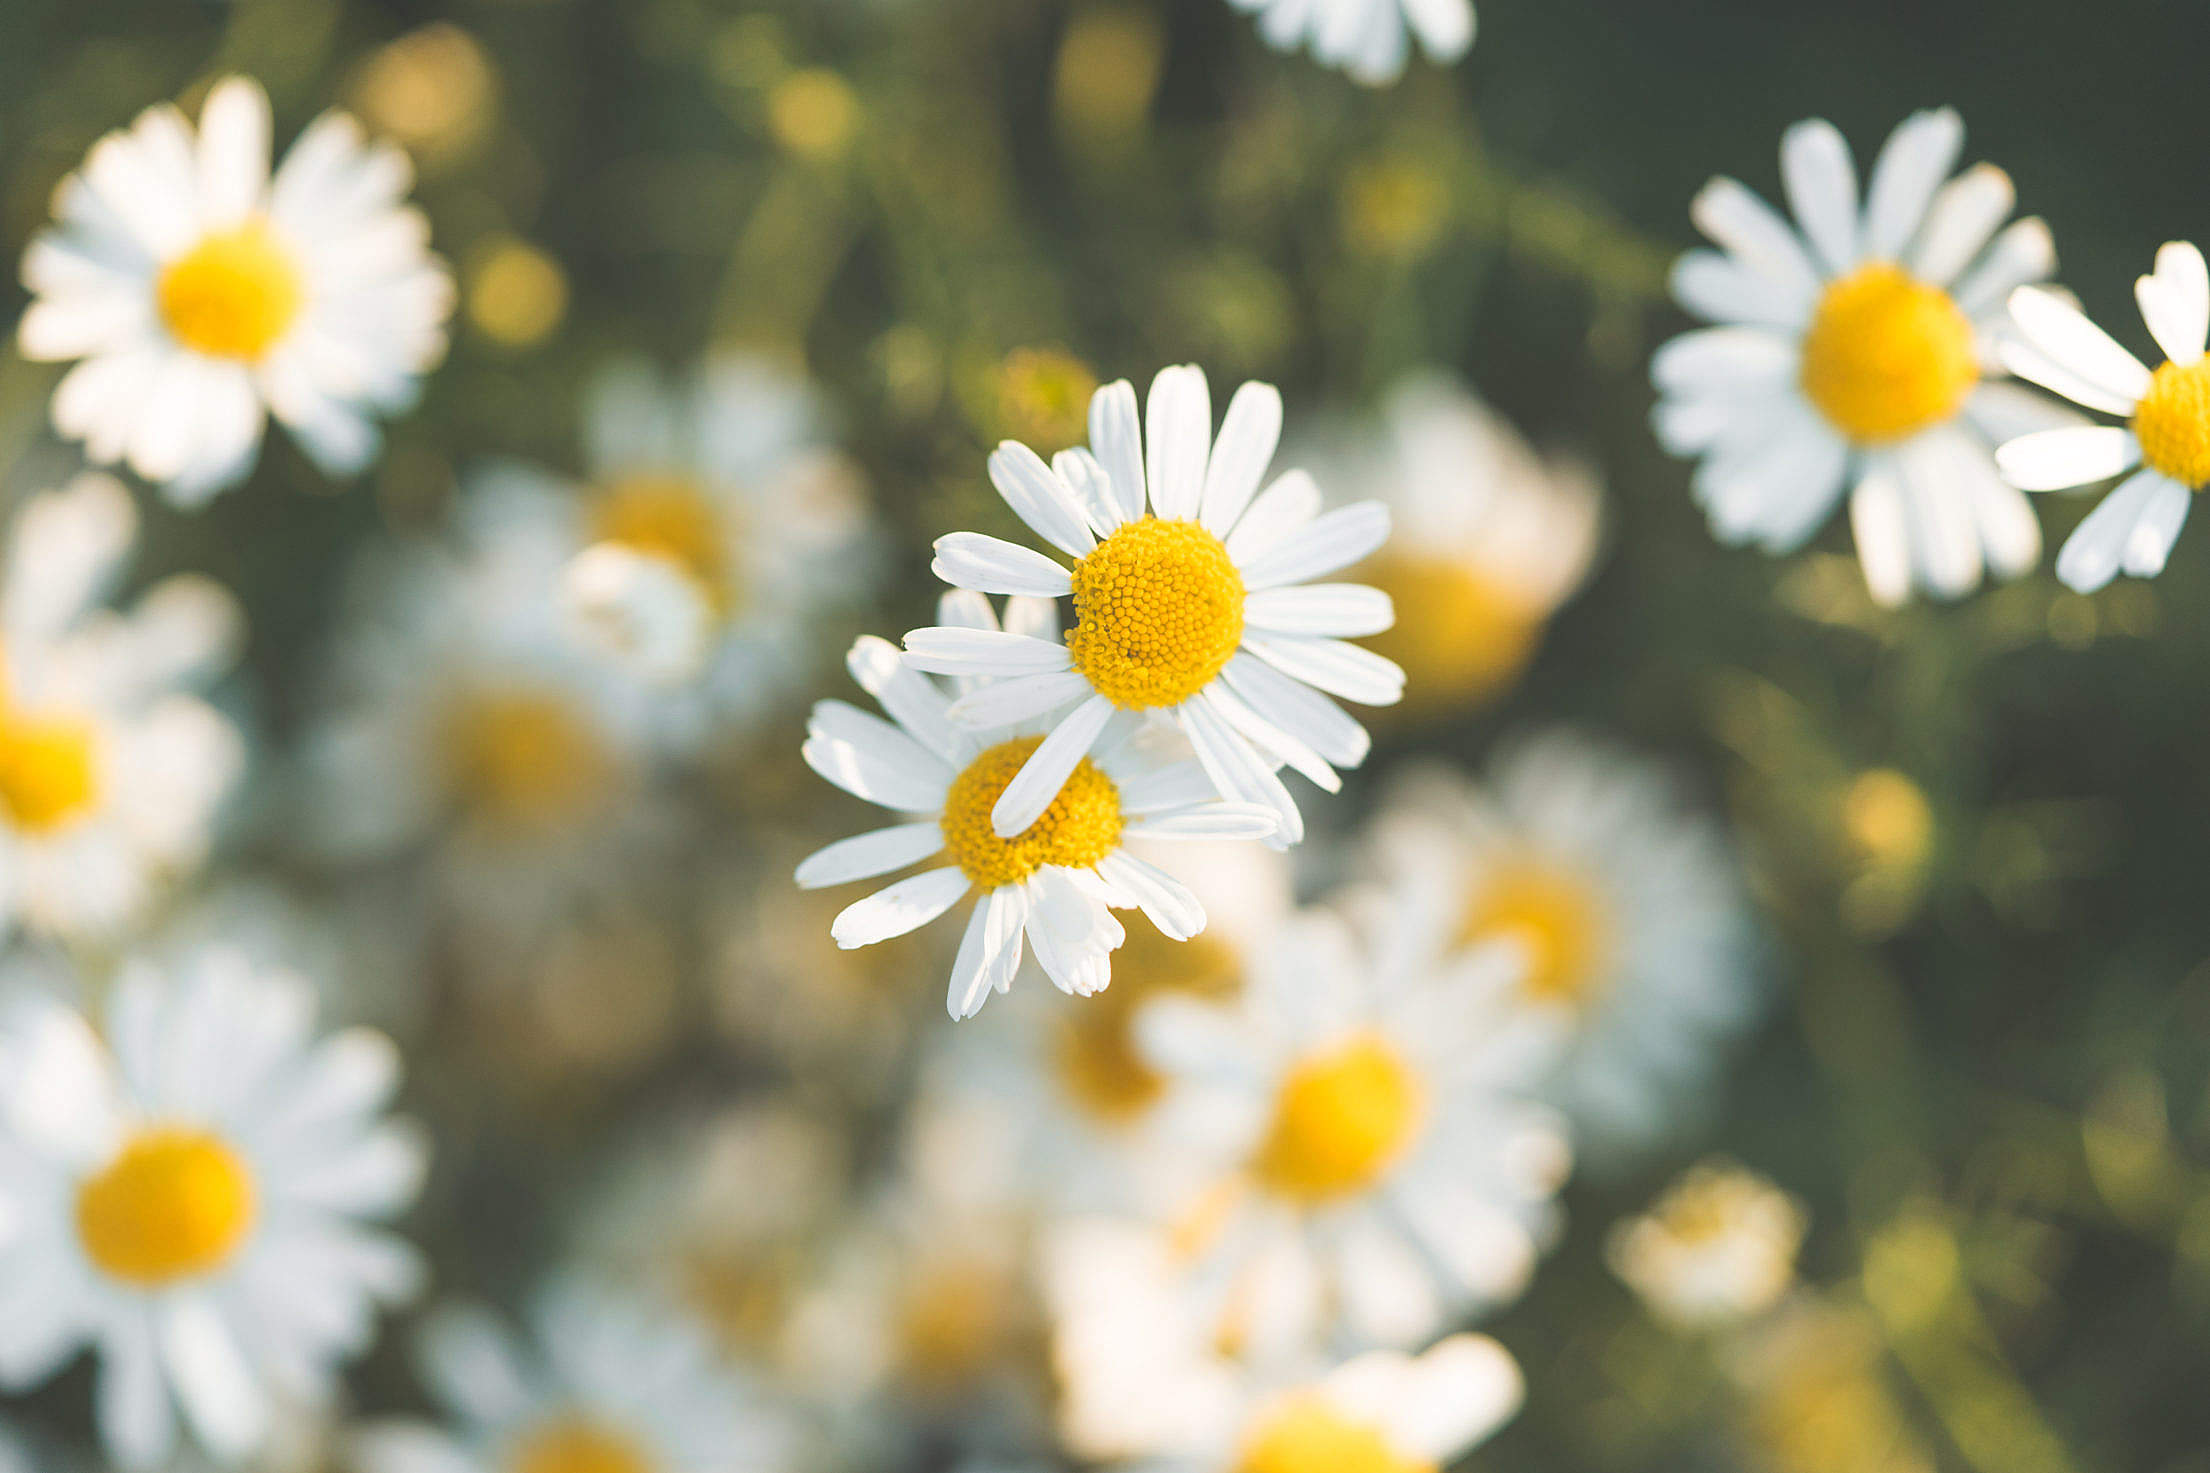 Daisy Flower #6 Free Stock Photo